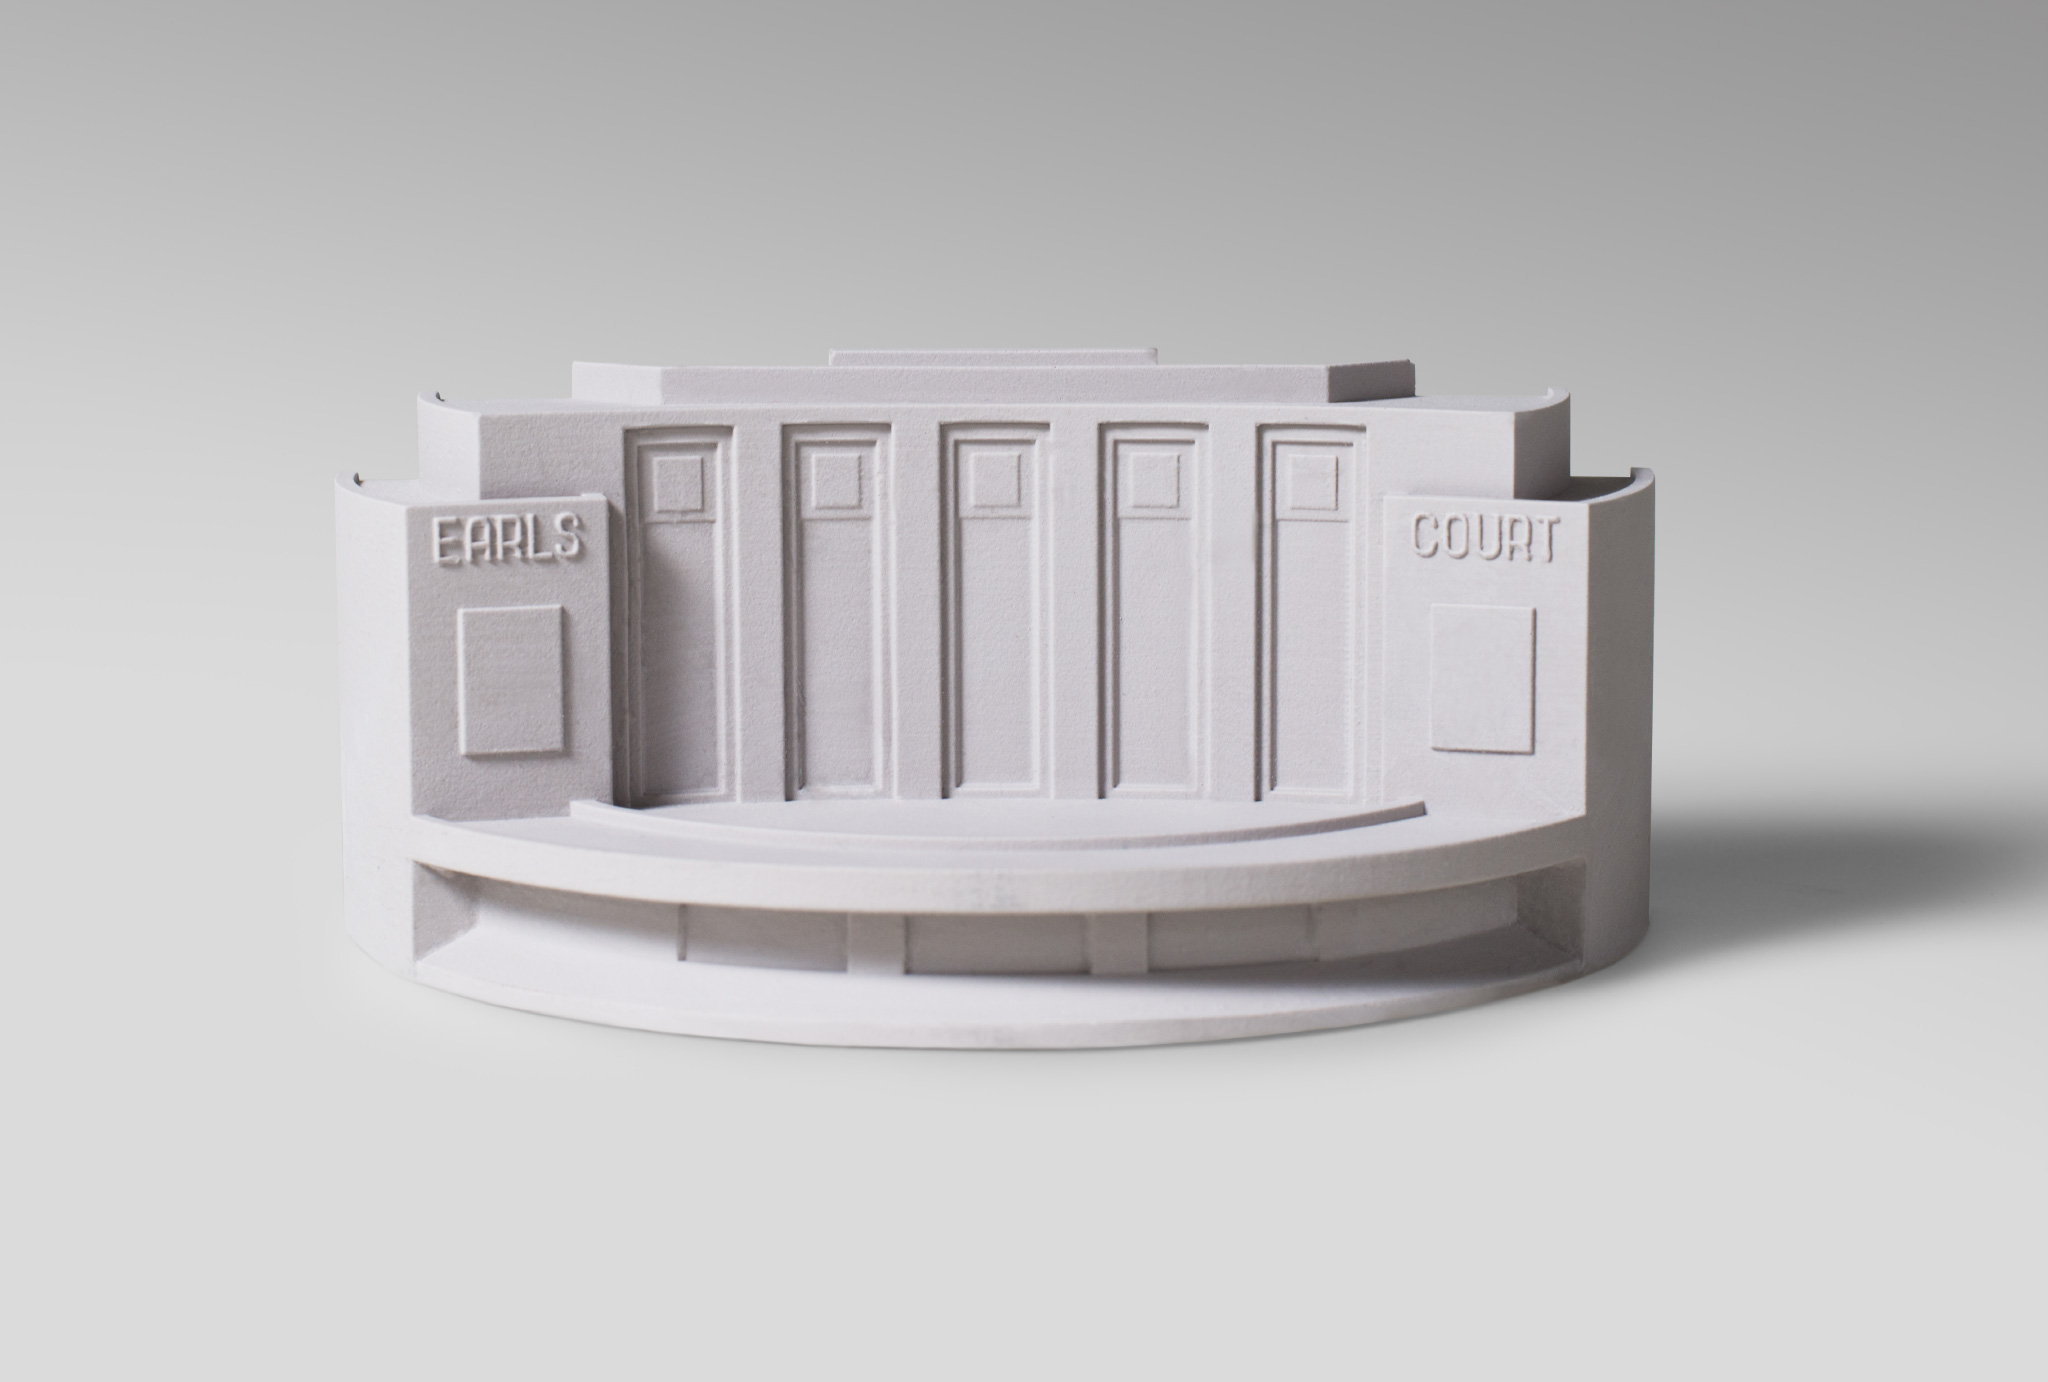 small model made of plaster from the Earls Court